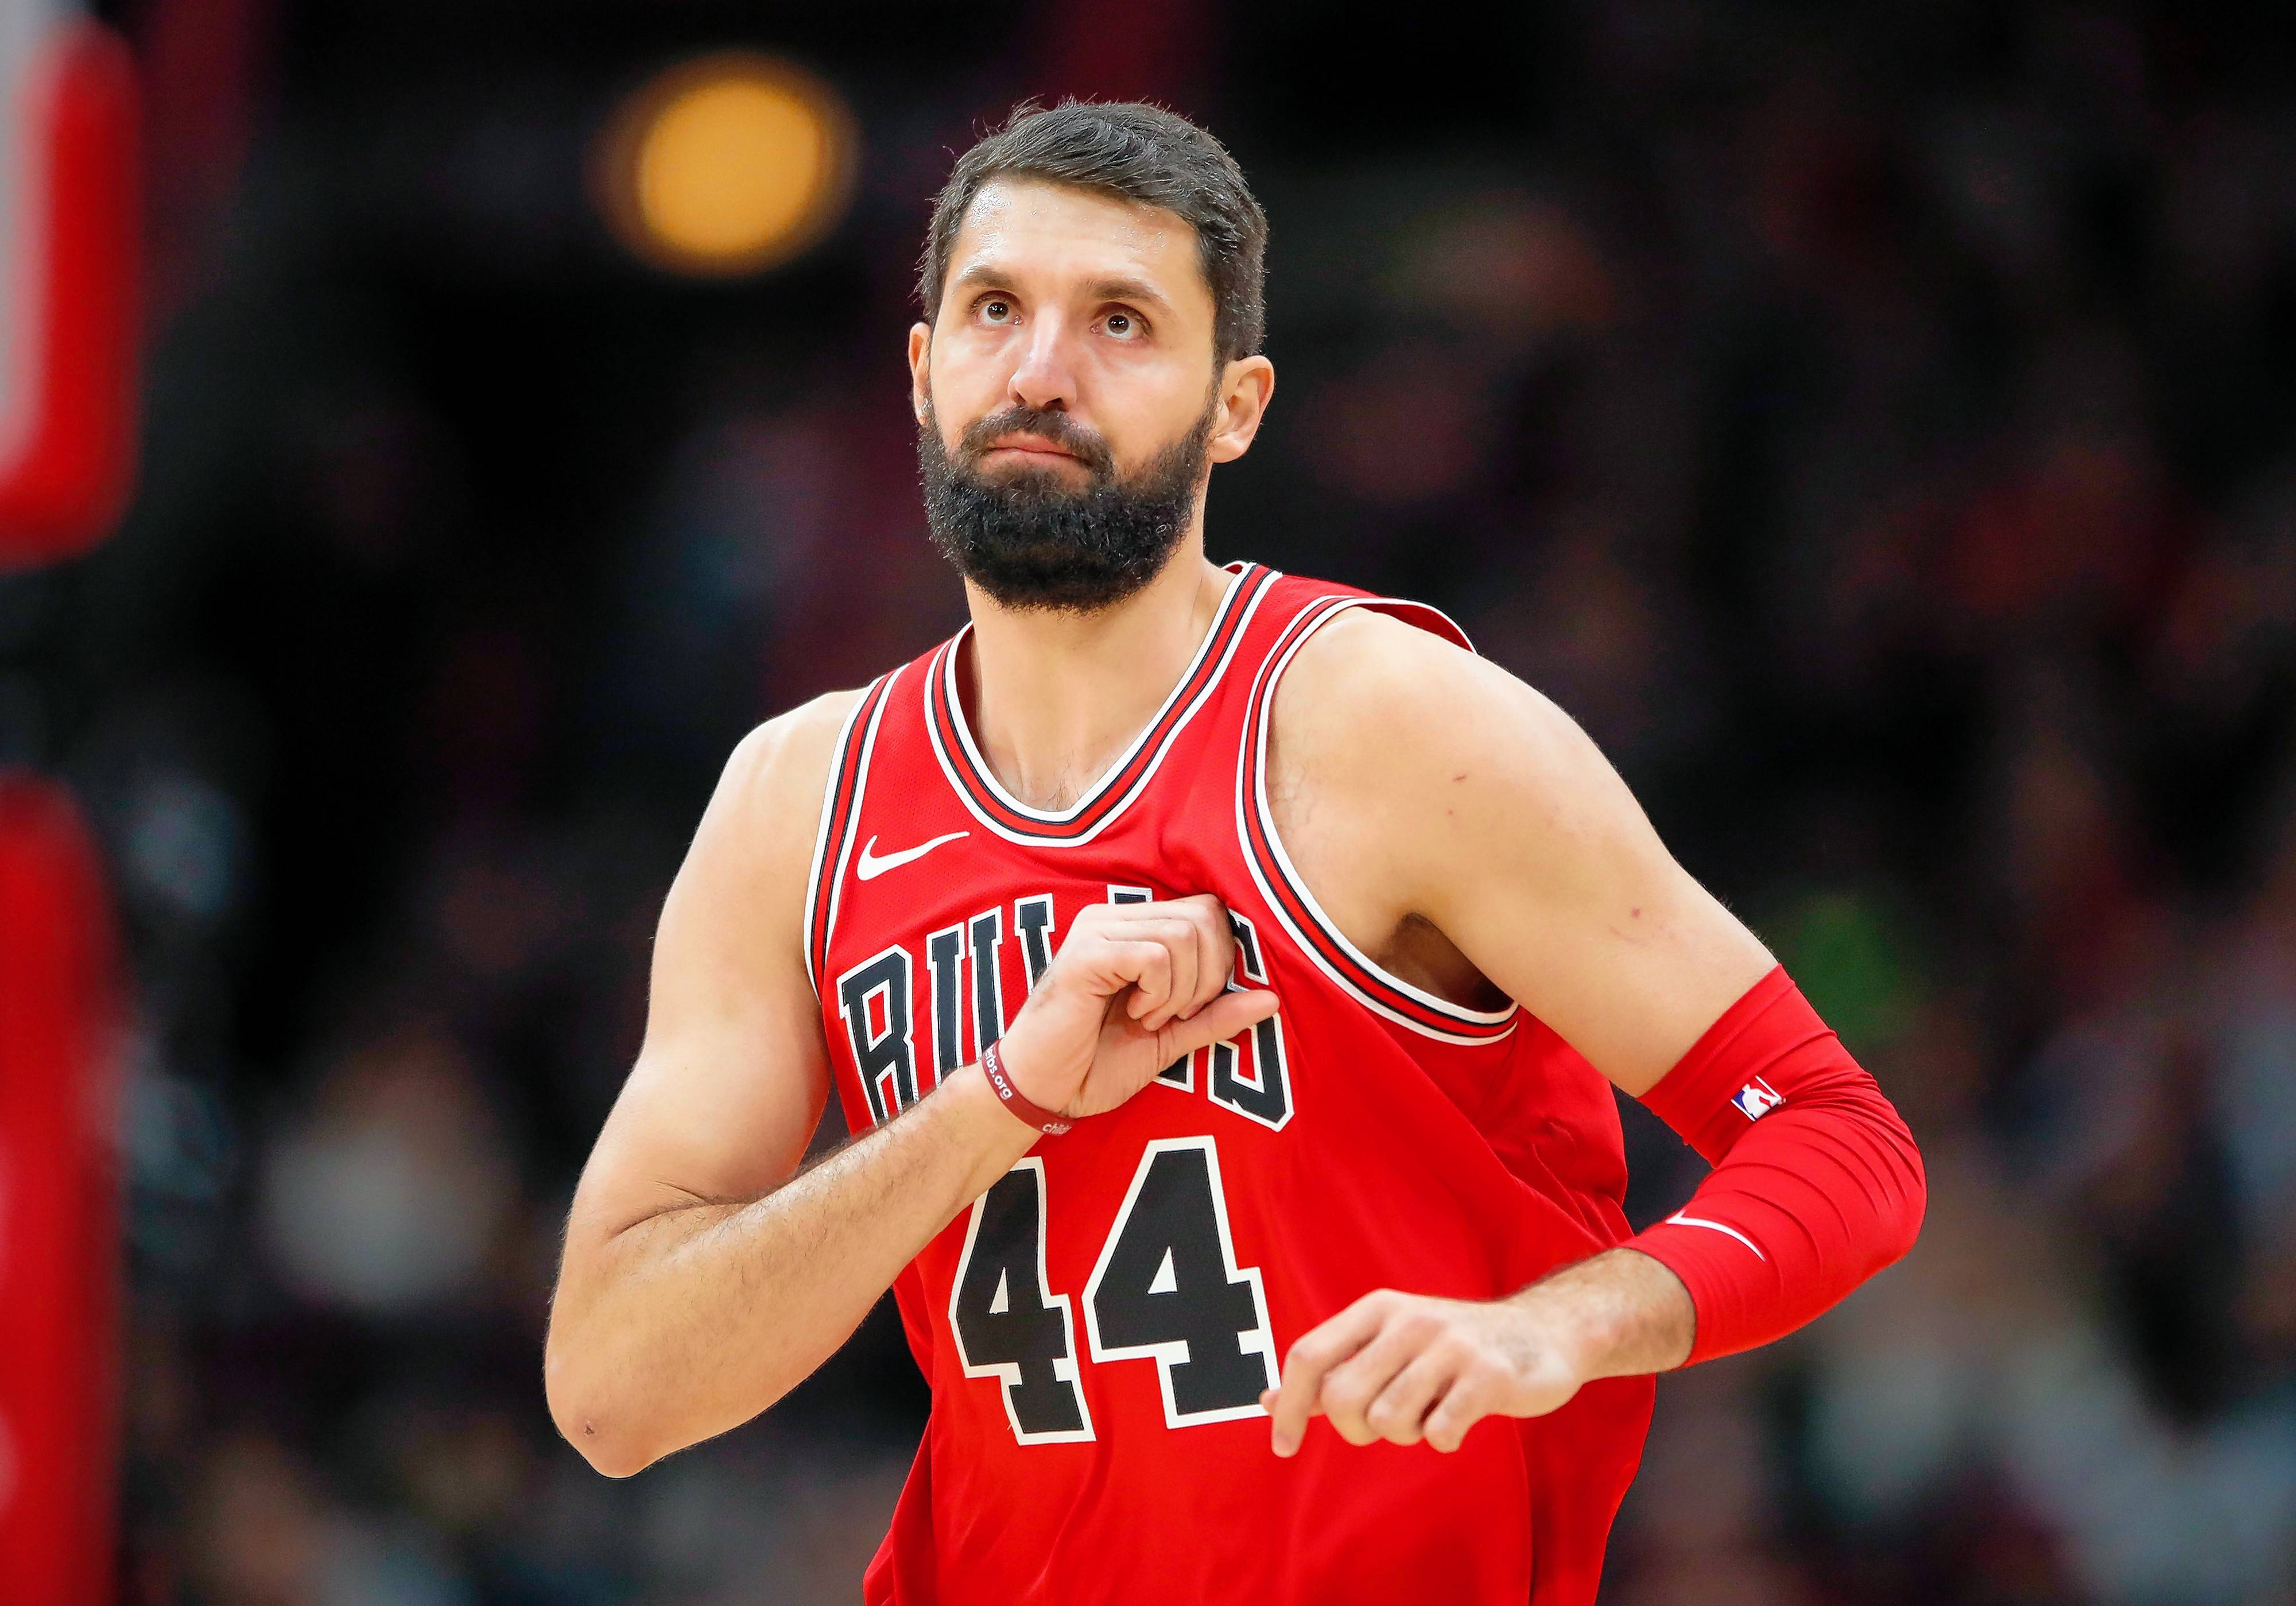 After missing two games with a stomach virus, Nikola Mirotic was back at practice and should be ready to play Saturday against Detroit. With Zach LaVine making his Bulls debut, the team will be essentially at full strength for the first time.